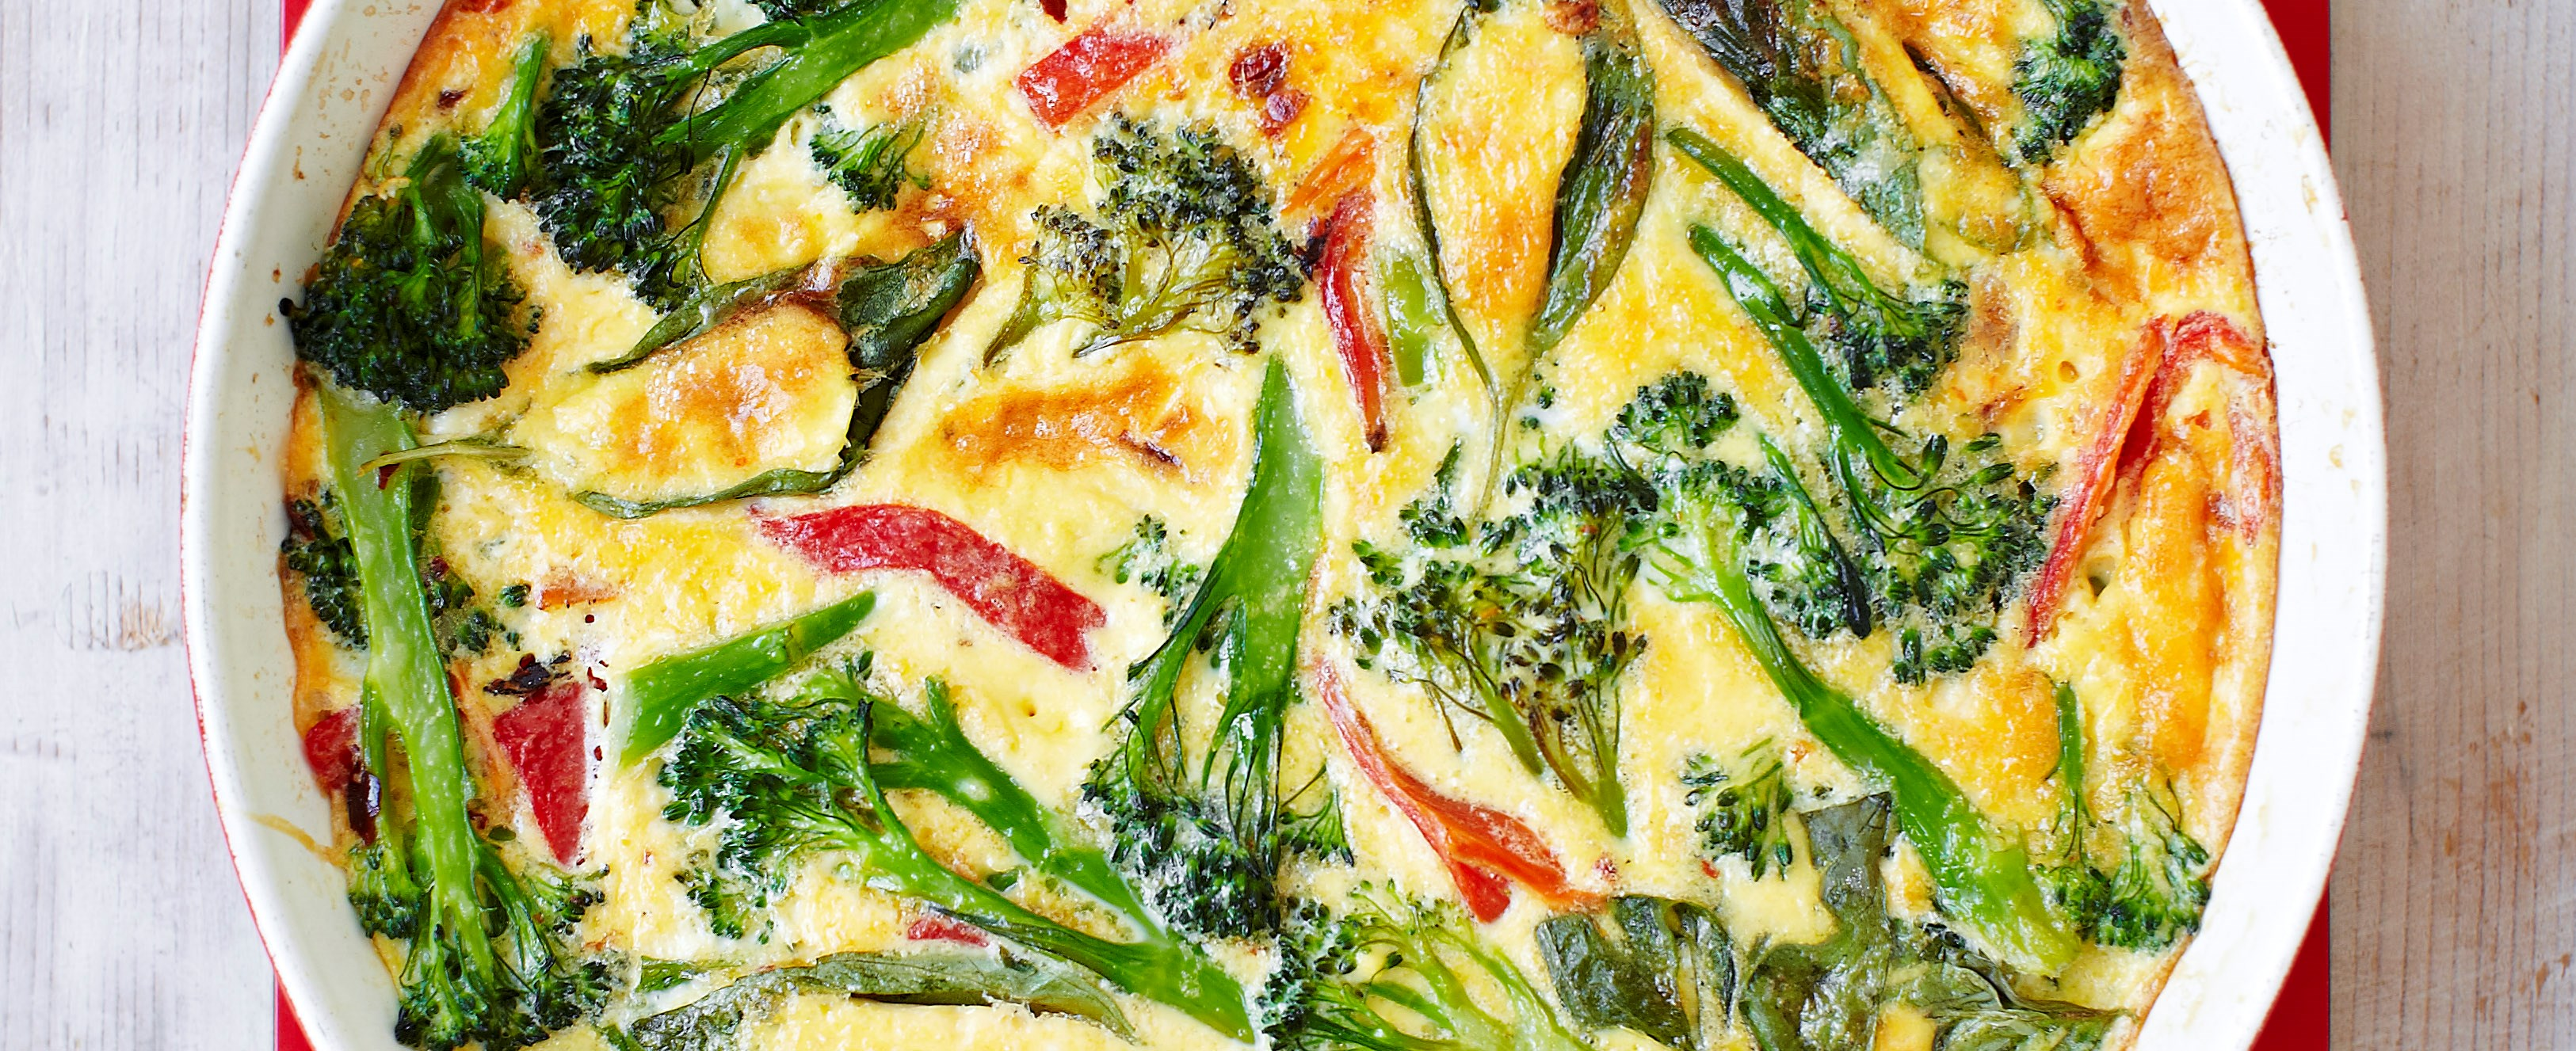 Broccoli and roasted red pepper frittata recipe - olive